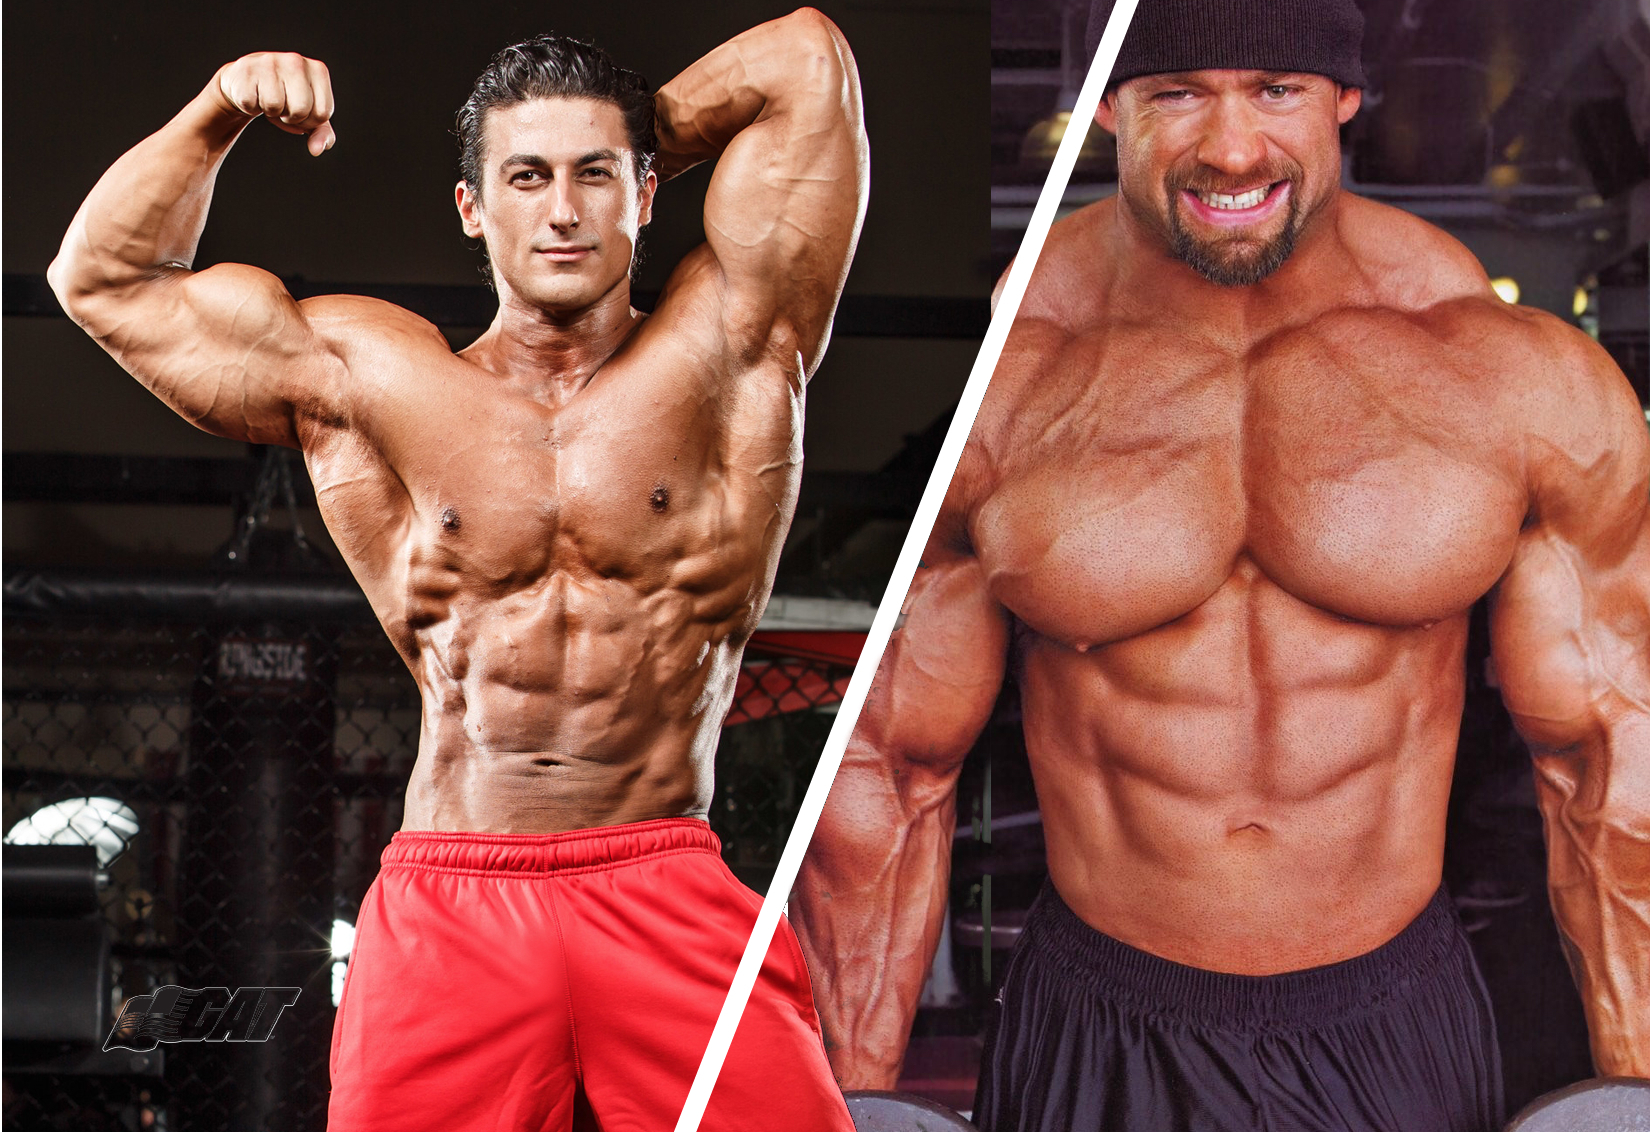 Powerlifting vs Bodybuilding – Similarities and Differences